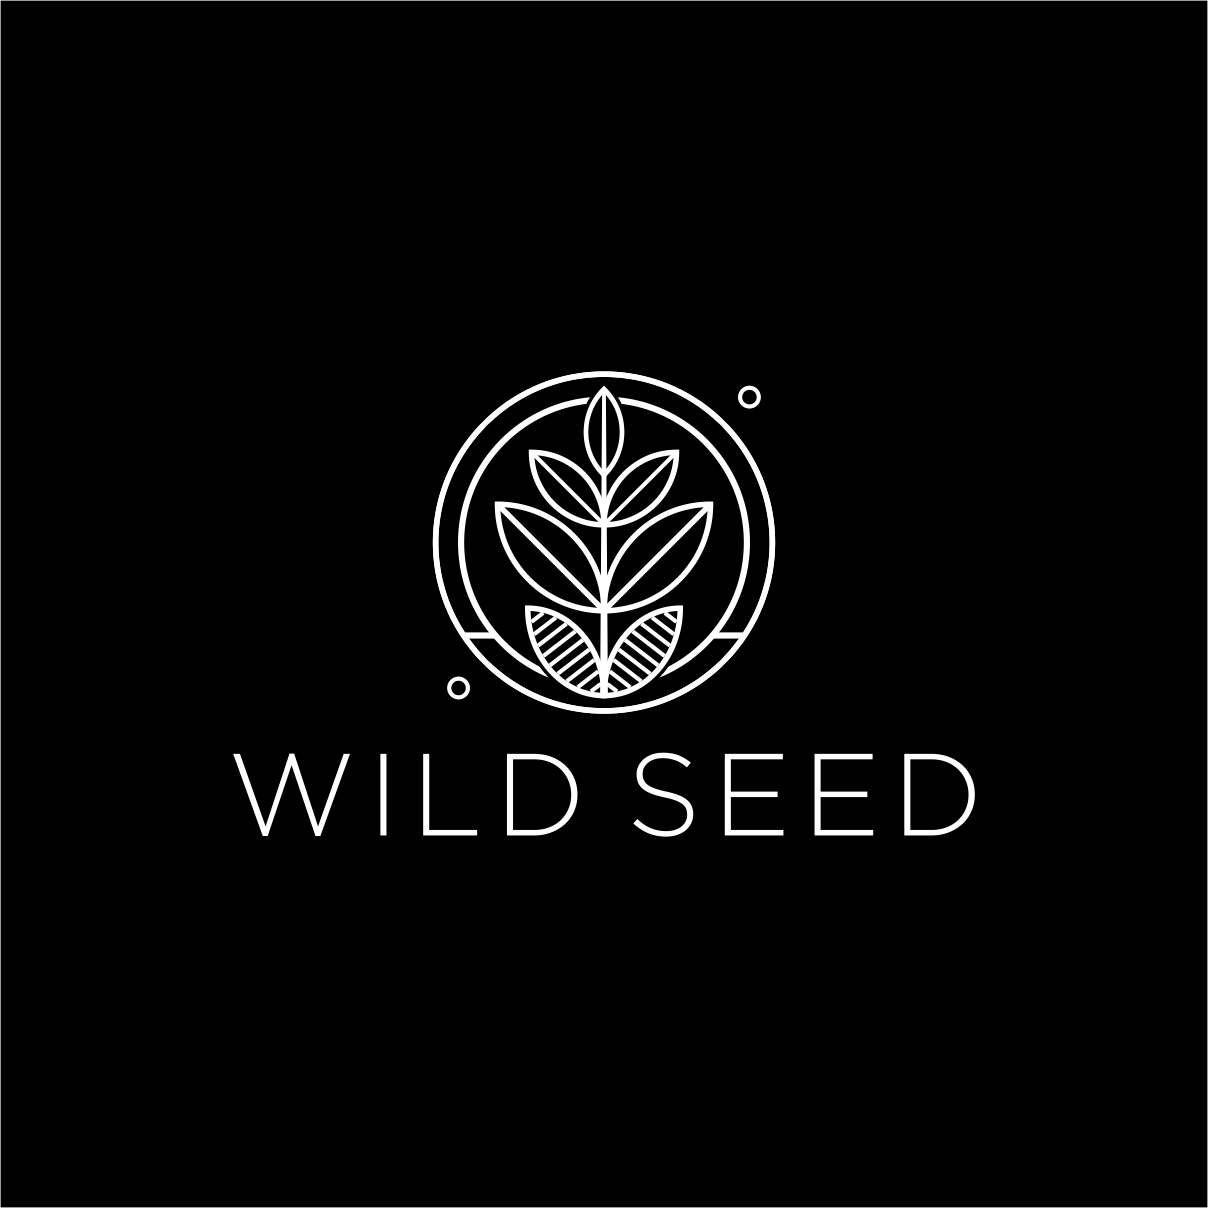 Wild Seed logo by The EMMS - On Black